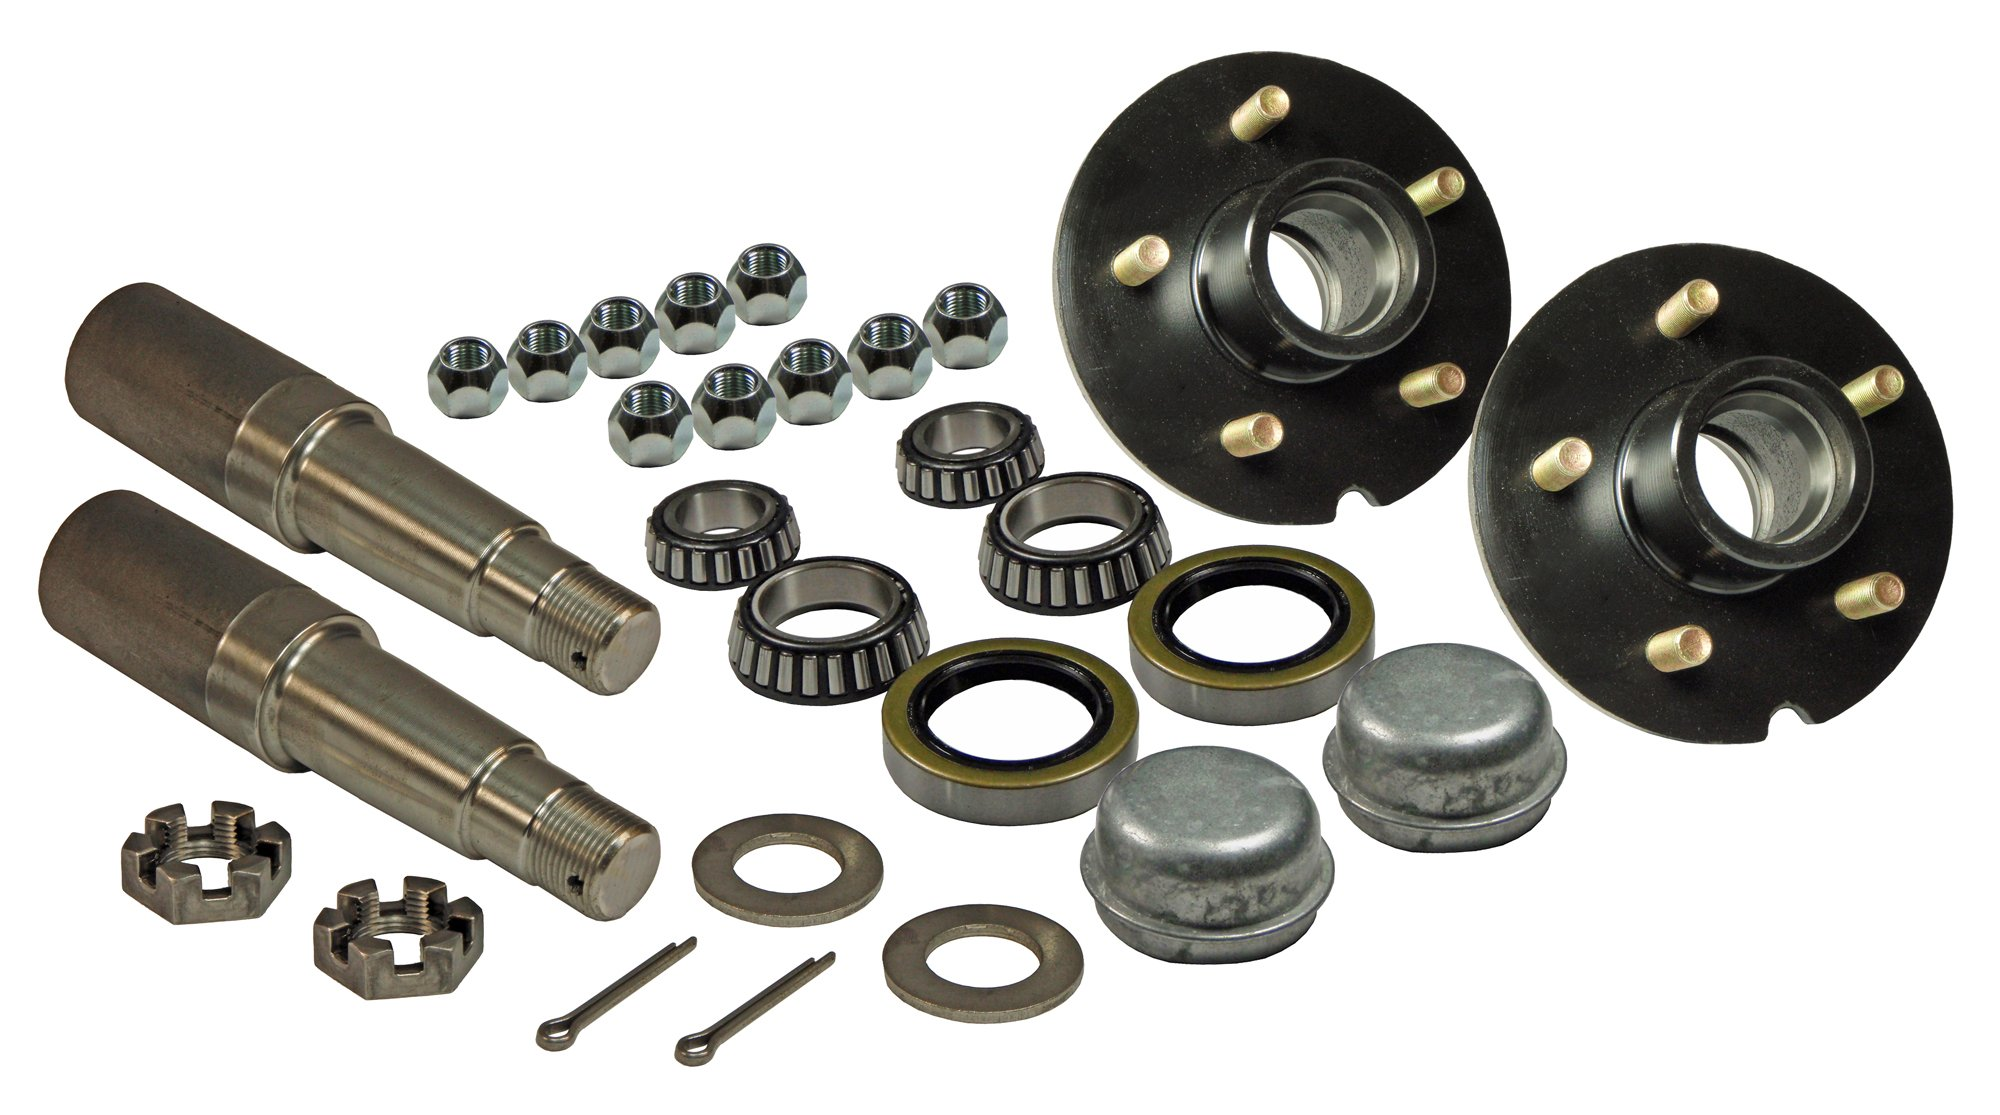 Rigid Hitch Pair of 5-Bolt On 4-1/2 Inch Hub Assembly (AKRD-3500545) Includes (2) 1-3/8 Inch to 1-1/16 Inch Tapered Spindles & Bearings by Rigid Hitch